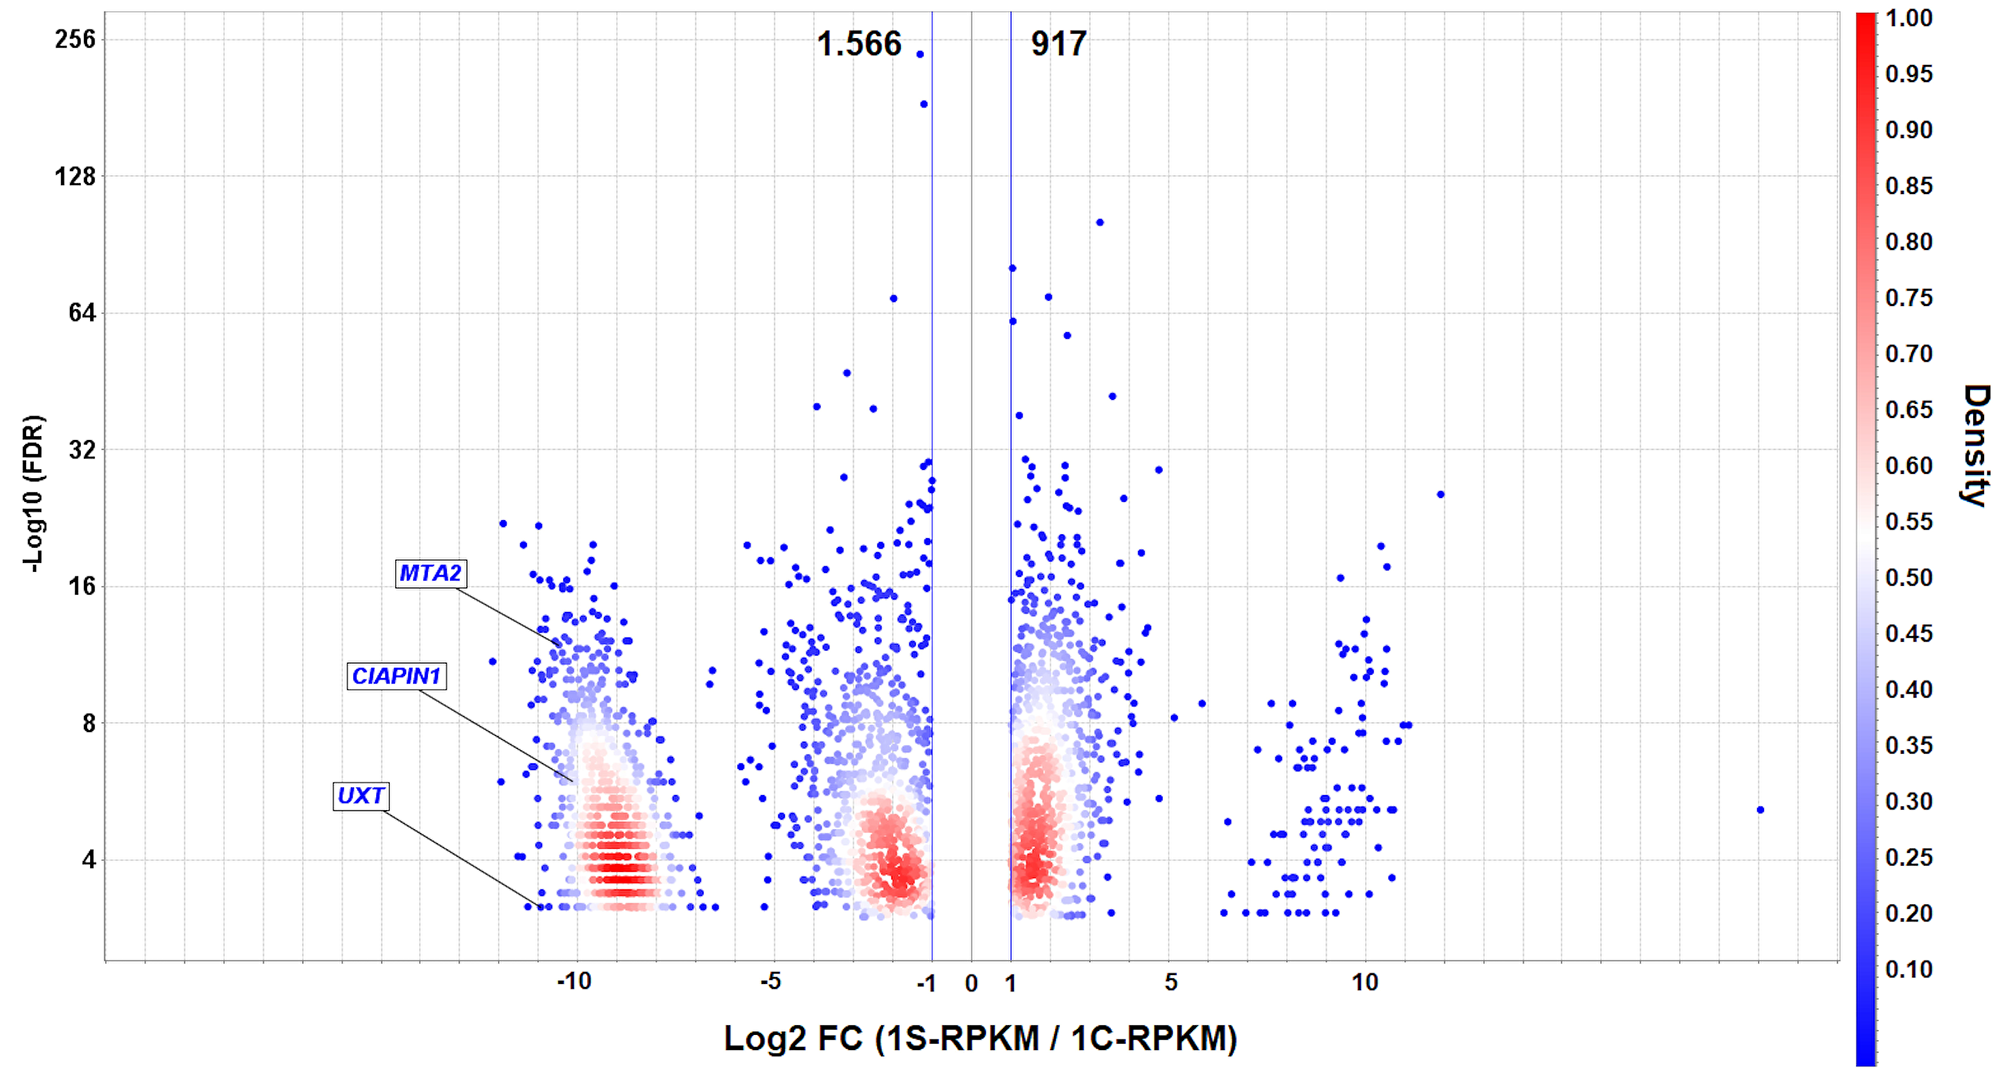 Volcano plot of differentially expressed genes (DEGs) in AGP01 cell line upon MYC silencing.